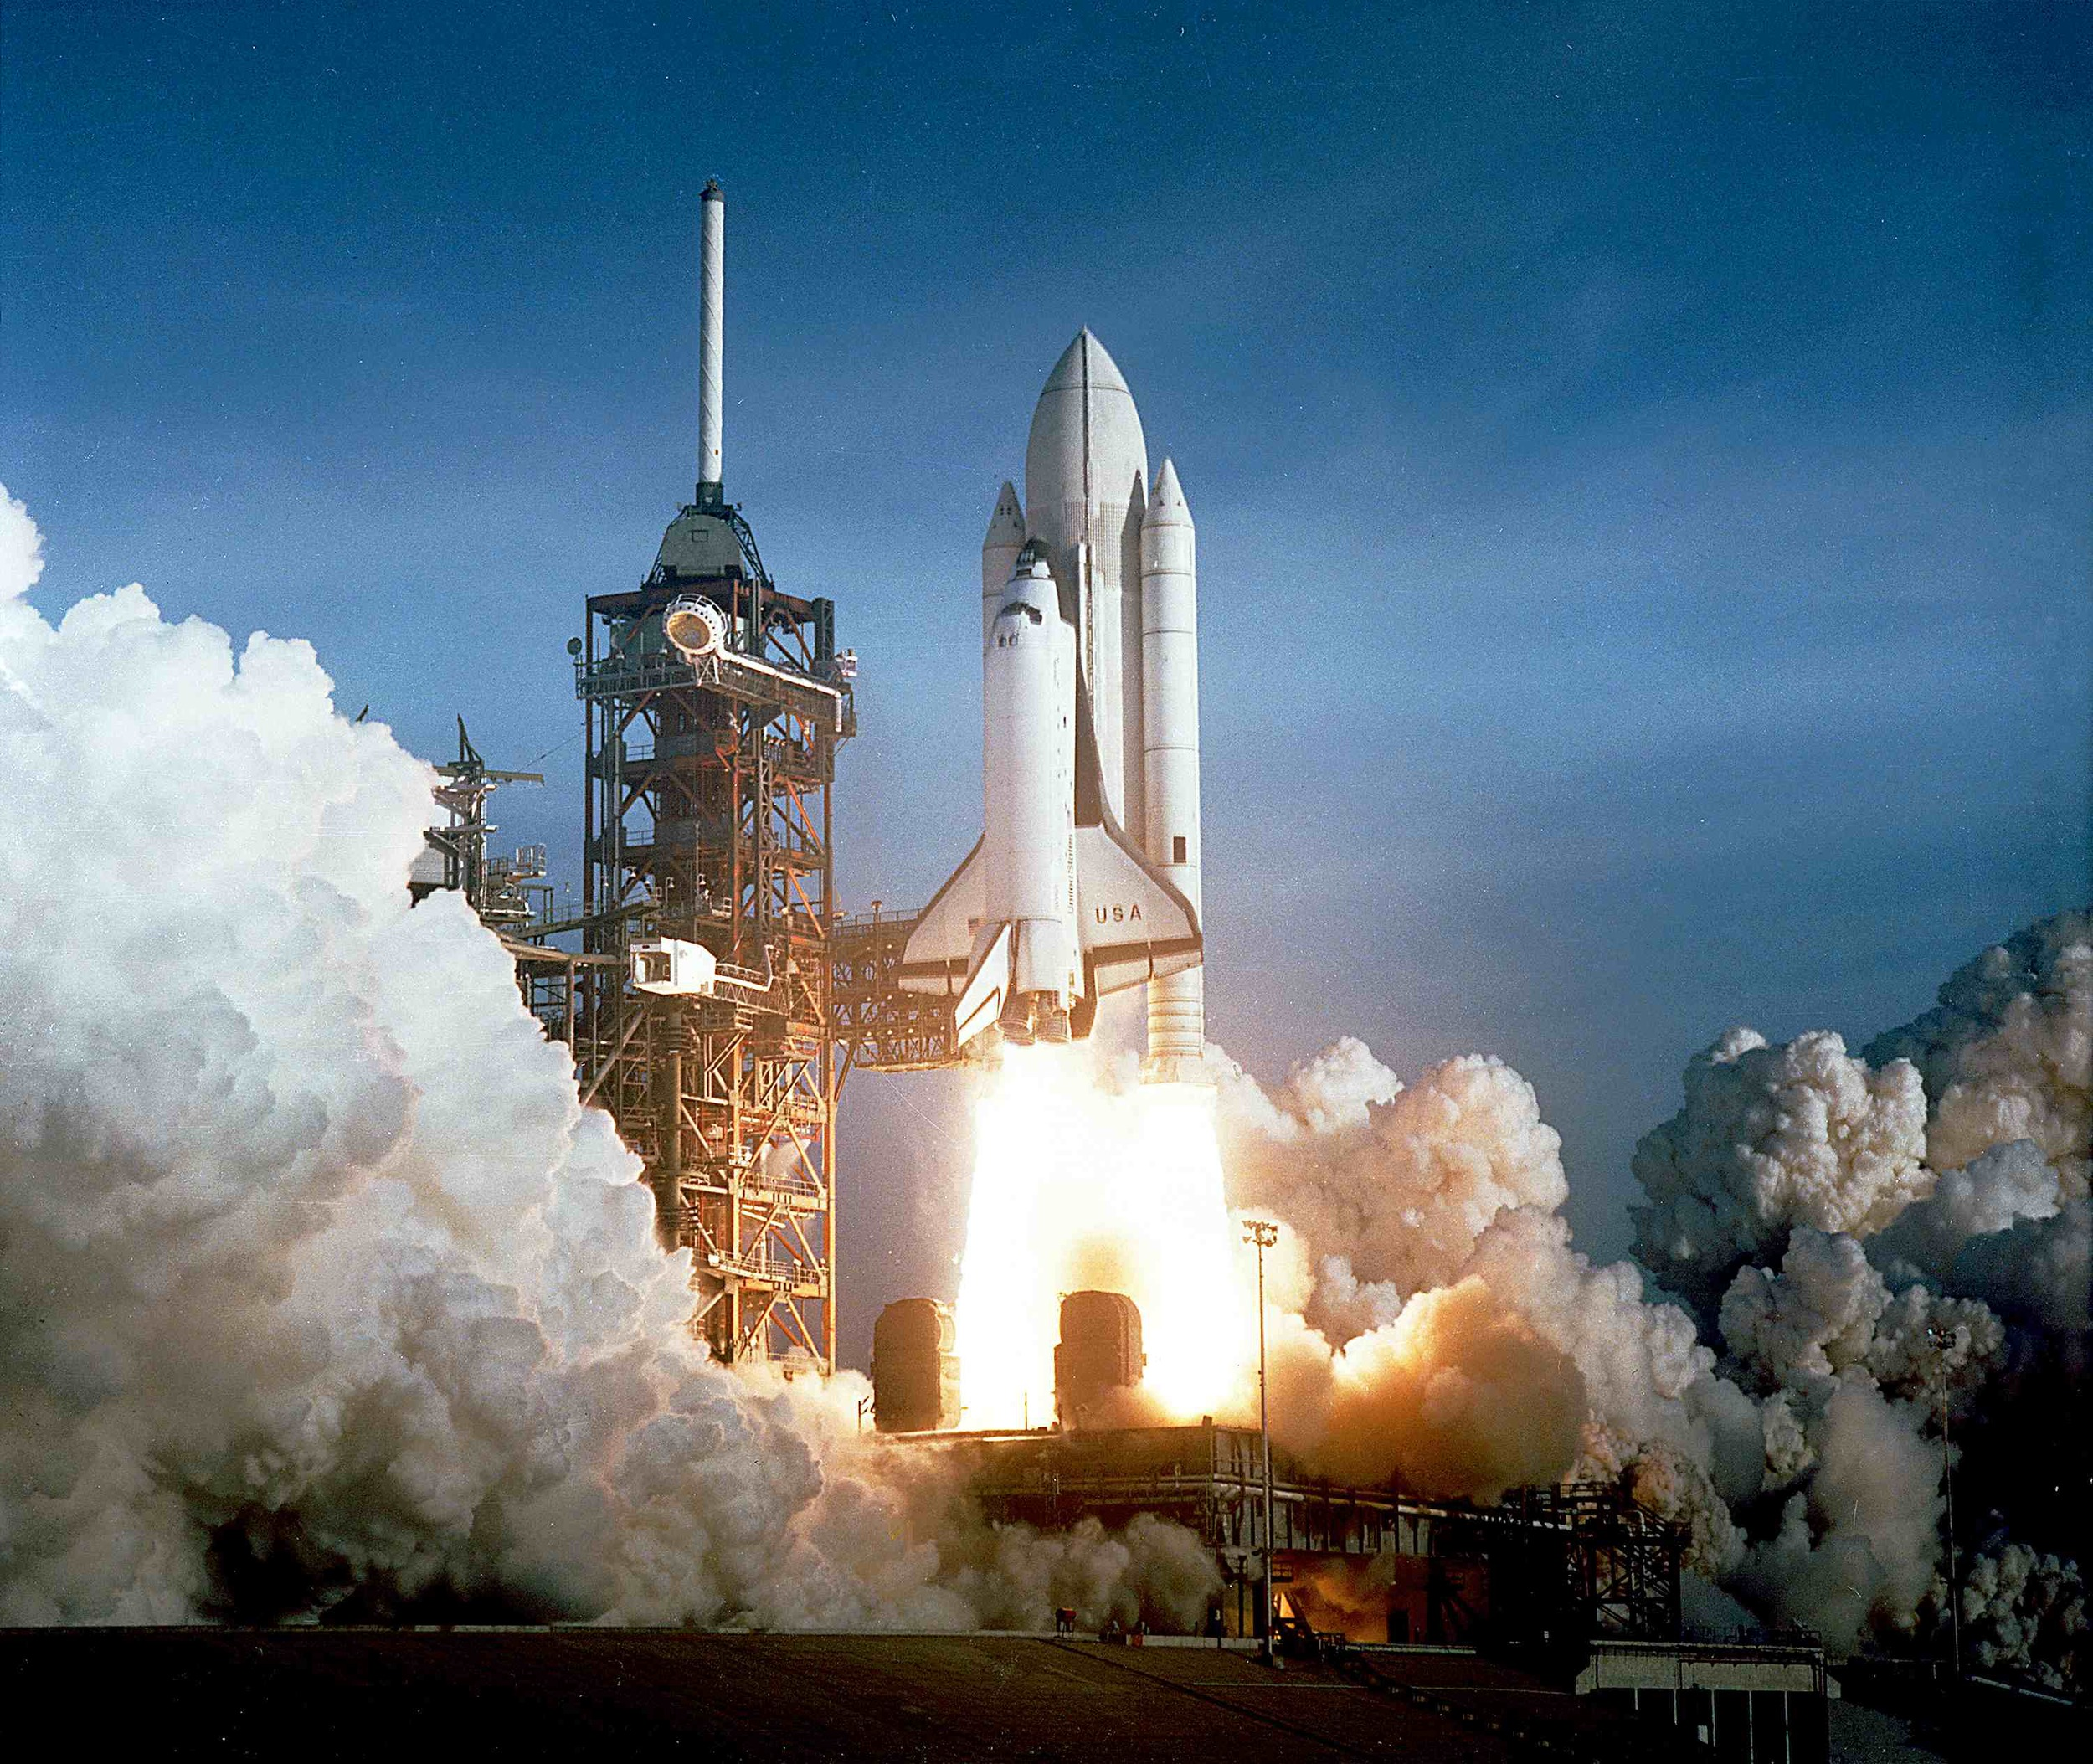 Space shuttle Columbia launching - By NASA [Public domain], via  Wikimedia Commons